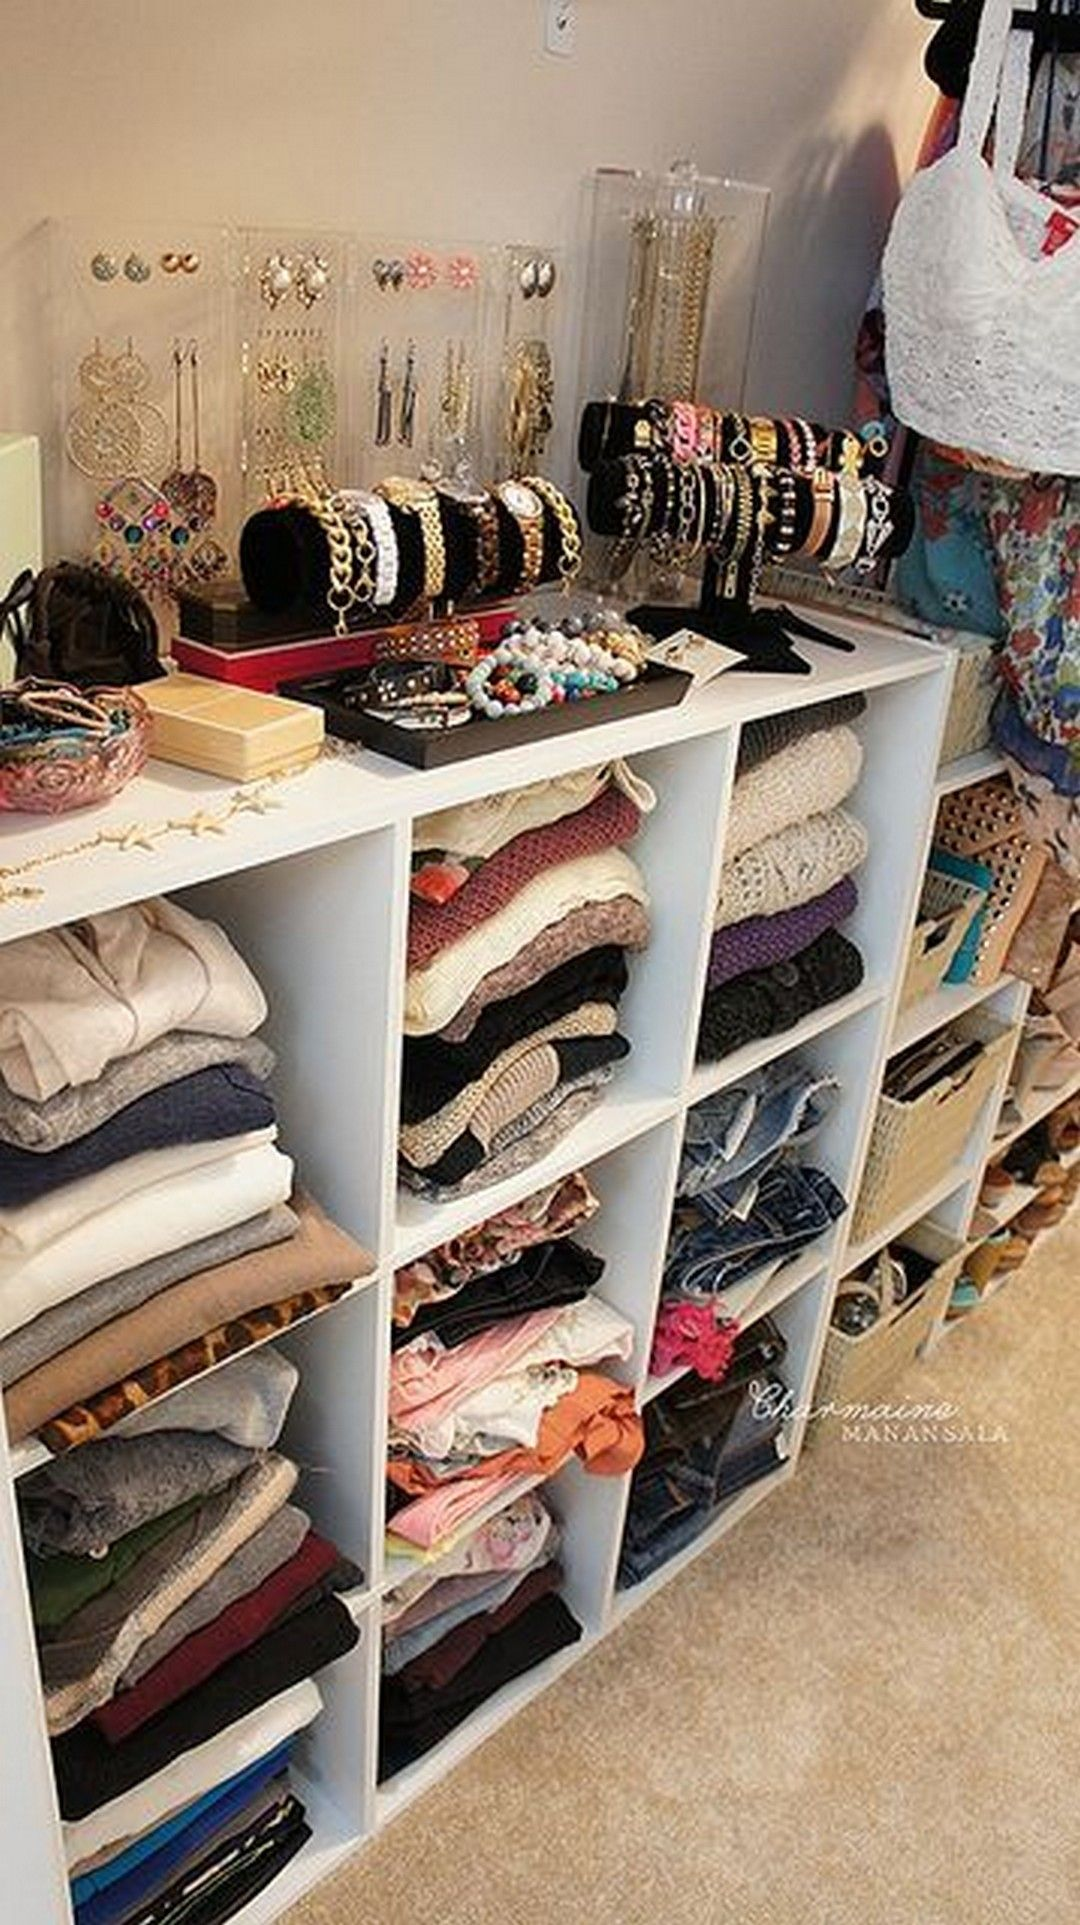 Easy Diy Small Bedroom Organization And Storage Hacks